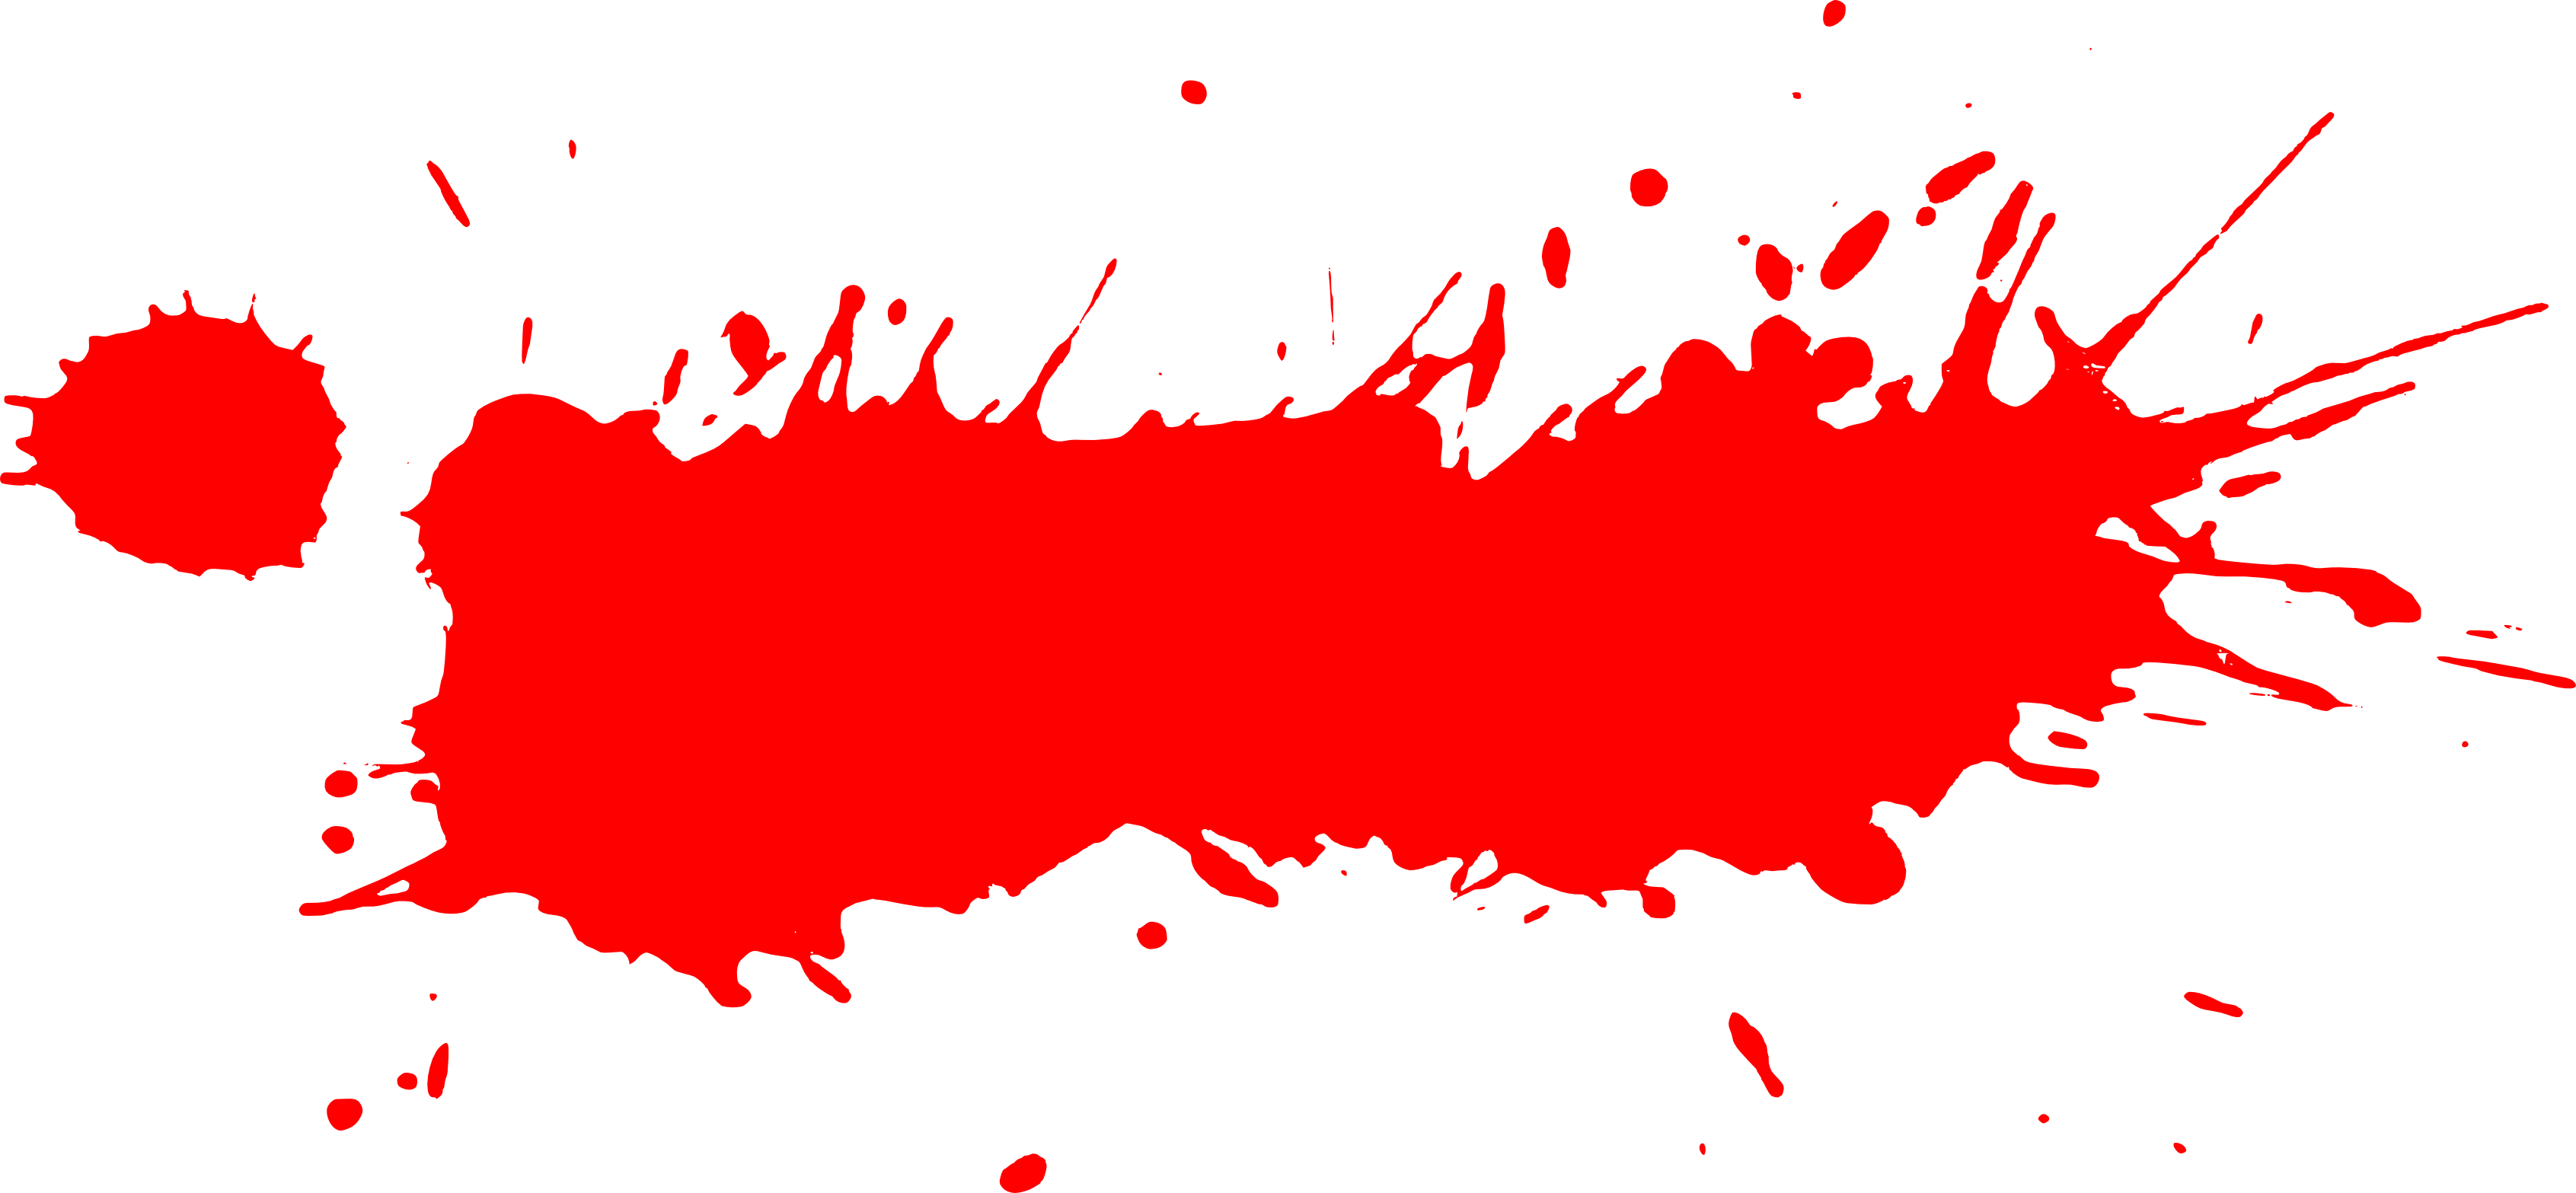 Splash of paint png. Free photo red splats